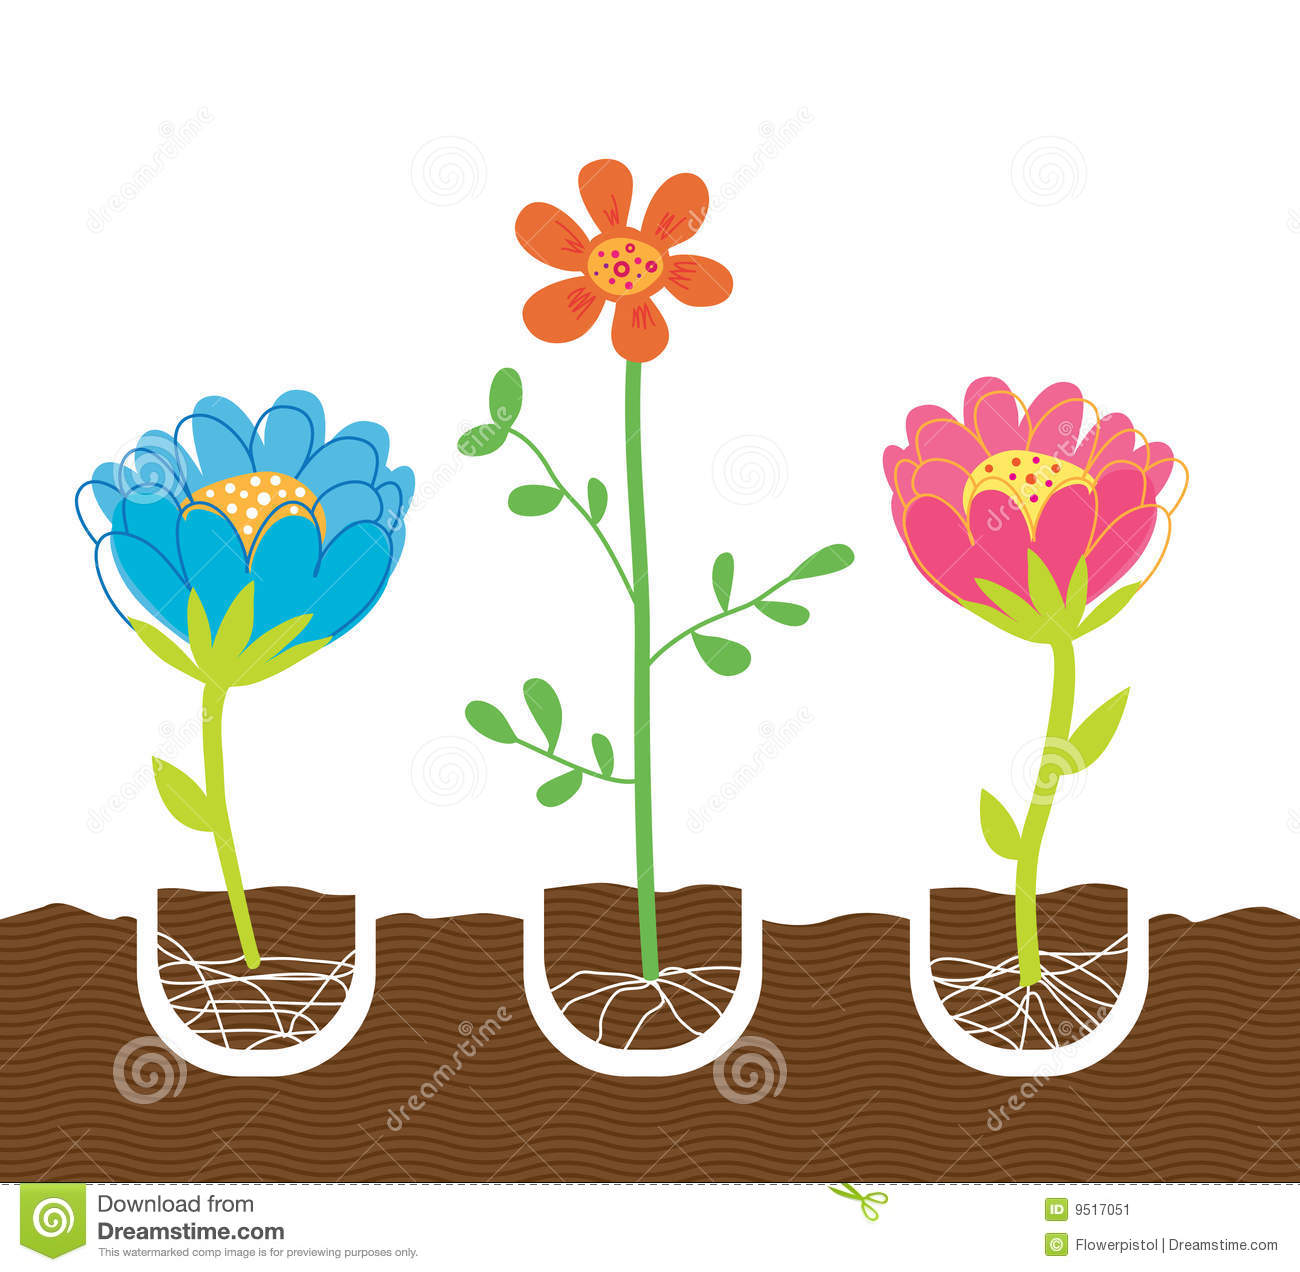 Planting Flowers Clipart.